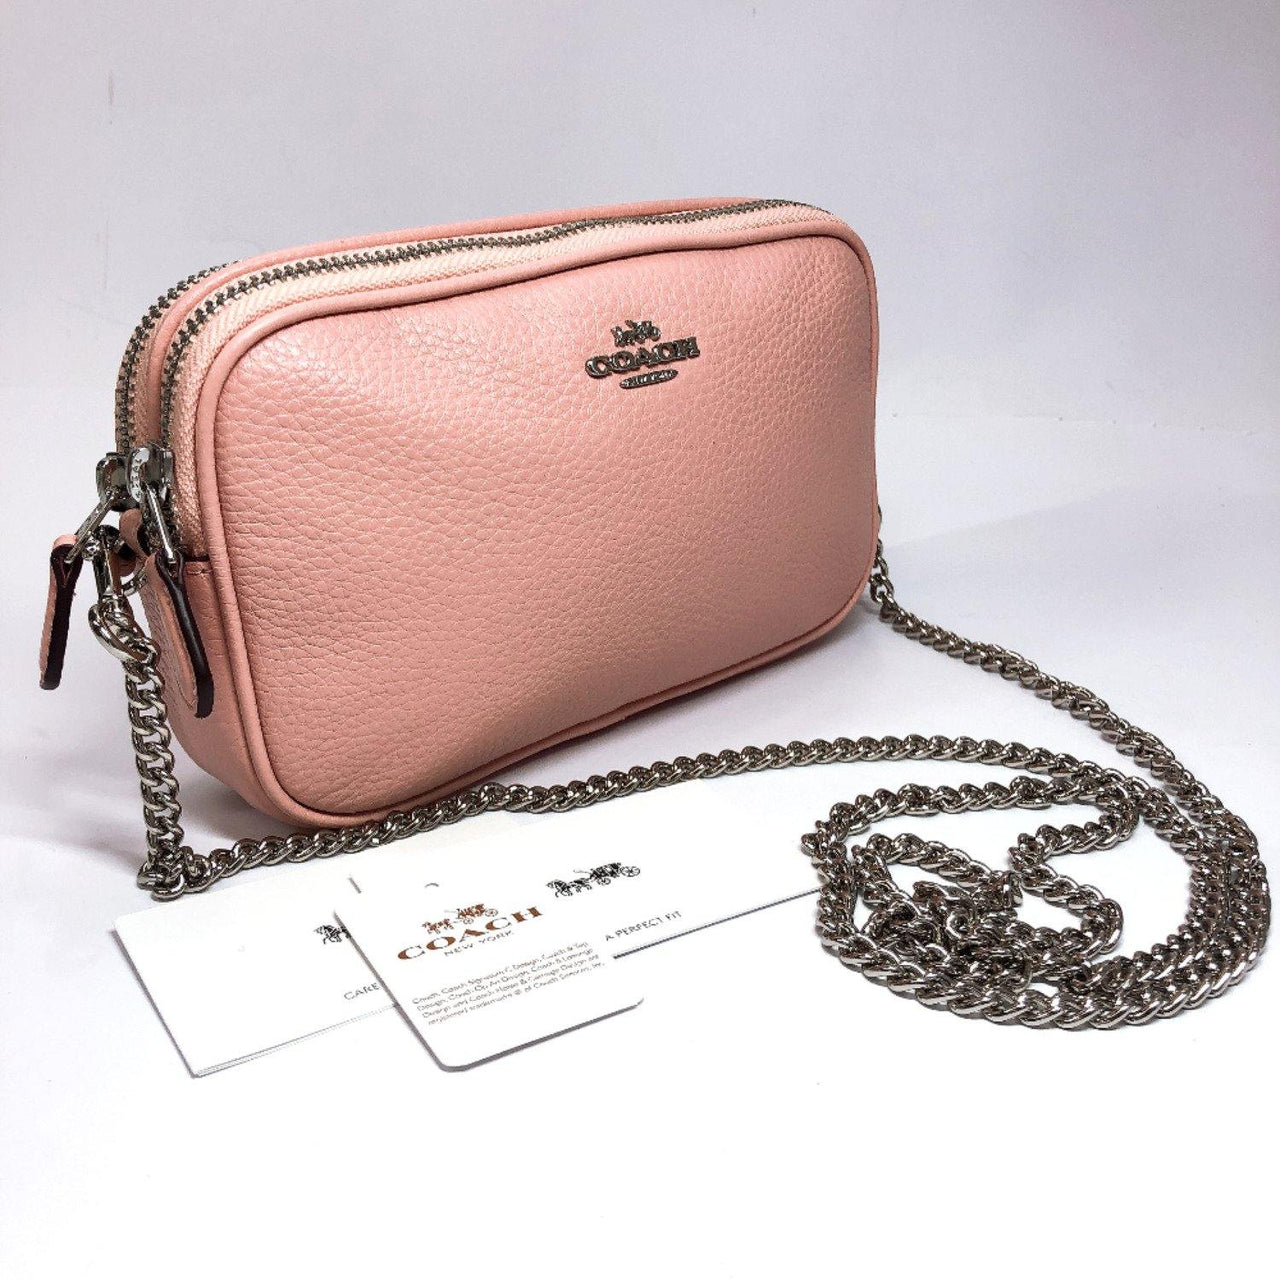 COACH Shoulder Bag F72490 Chain leather pink Women Used - JP-BRANDS.com